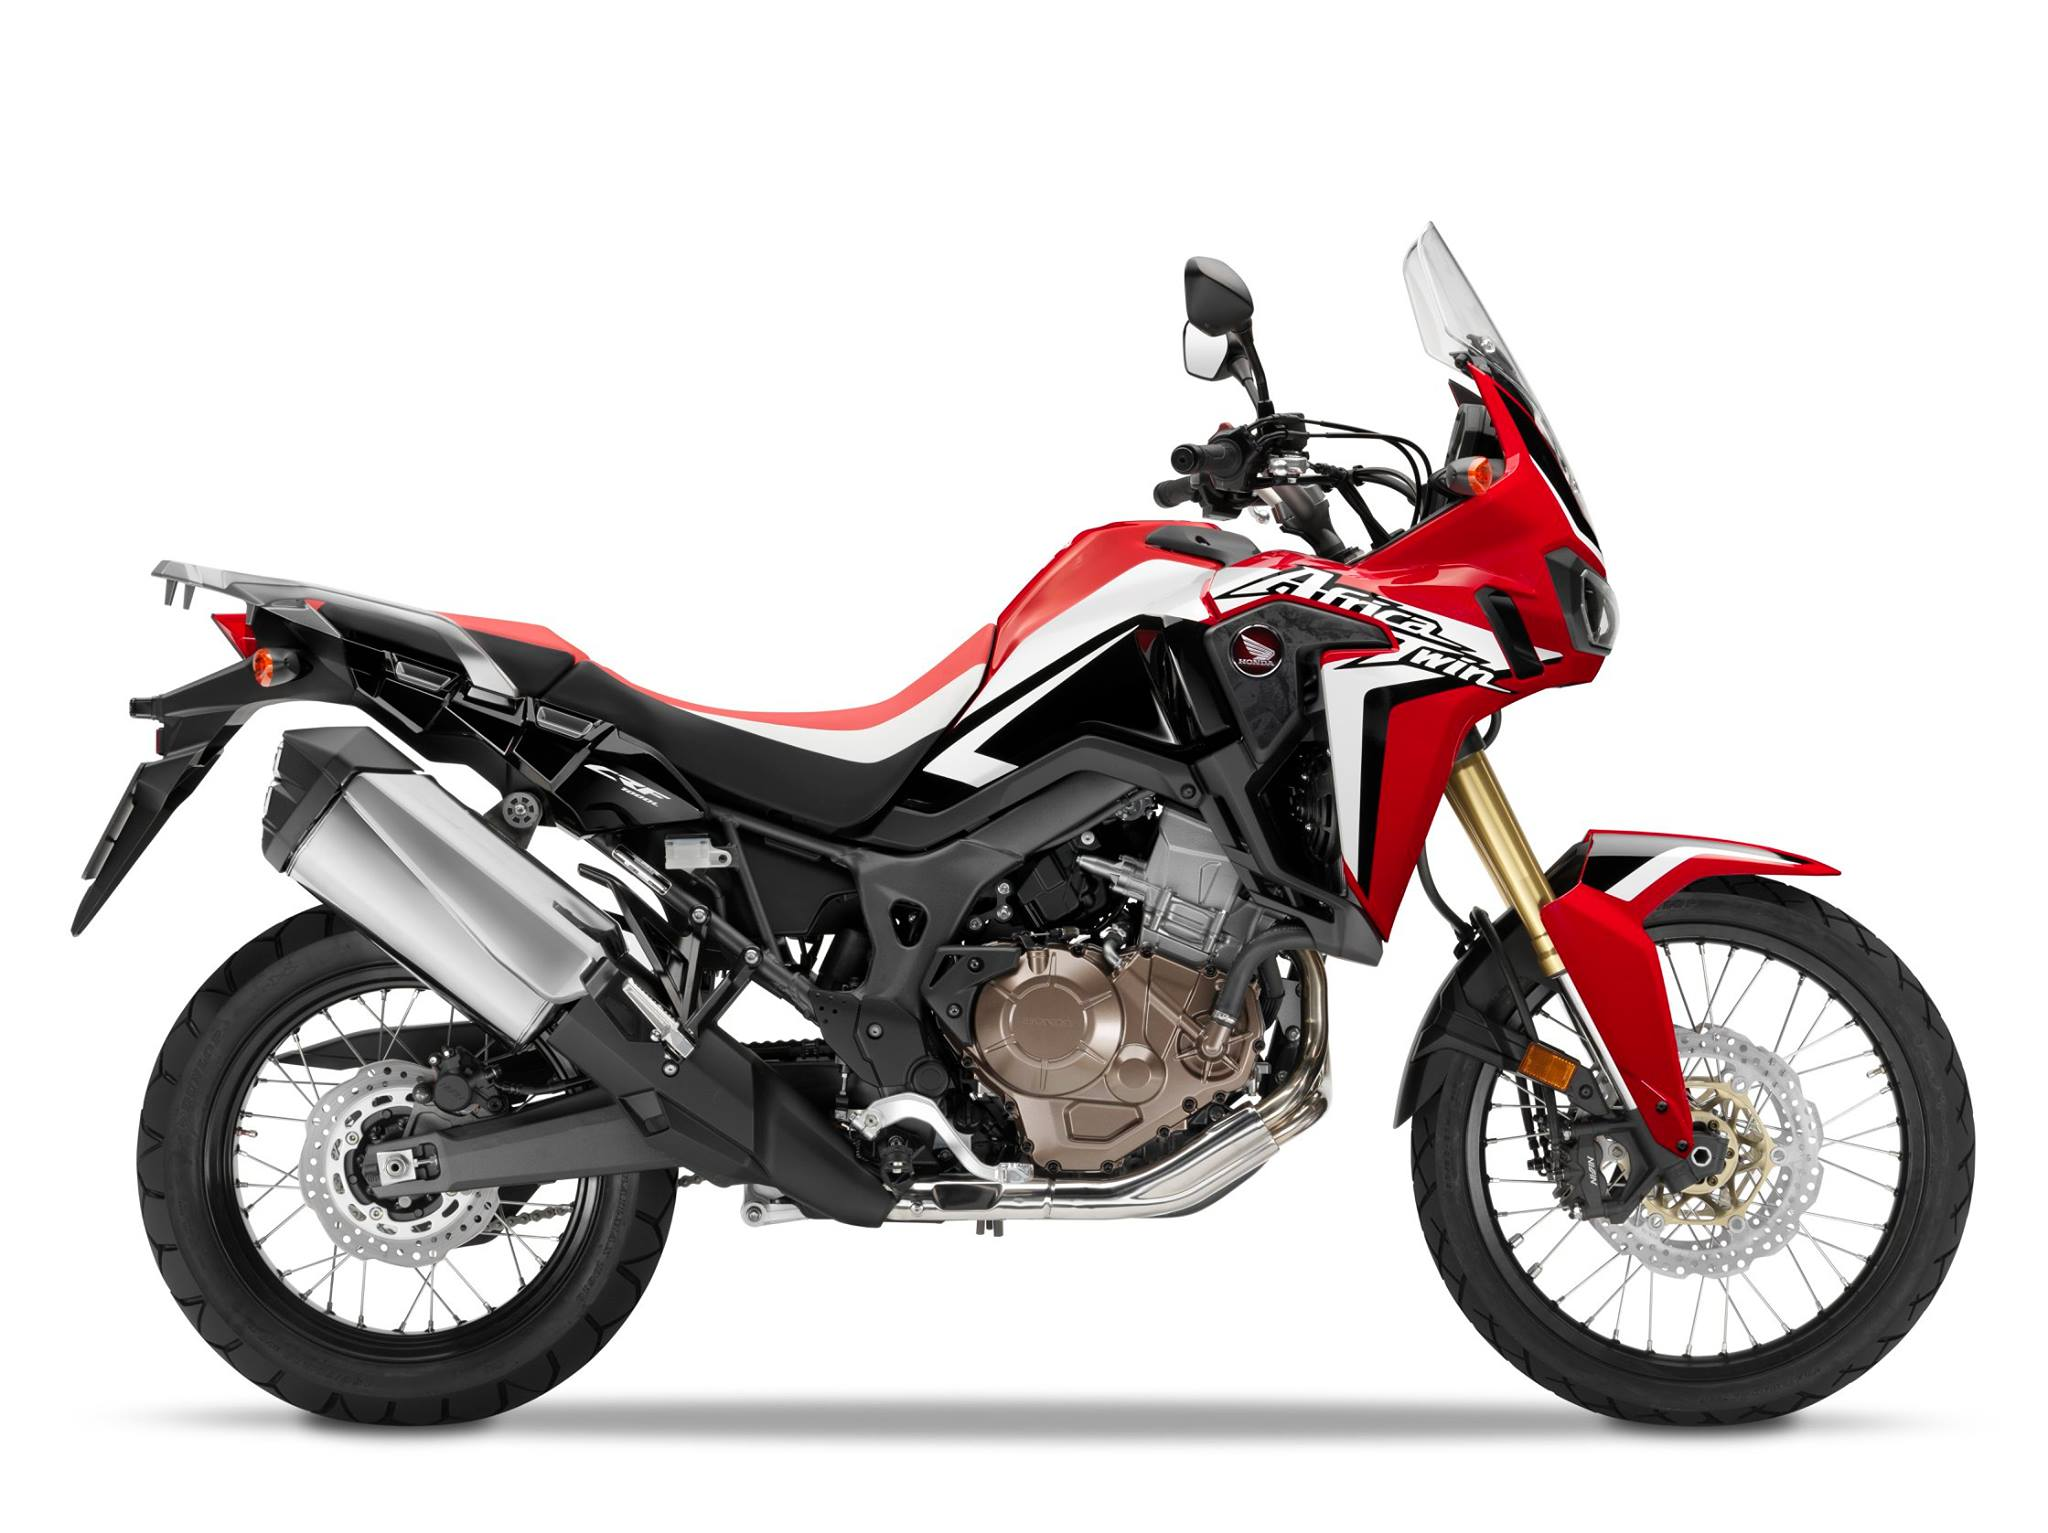 scoop honda africa twin specs leaked the bike makes 94hp. Black Bedroom Furniture Sets. Home Design Ideas